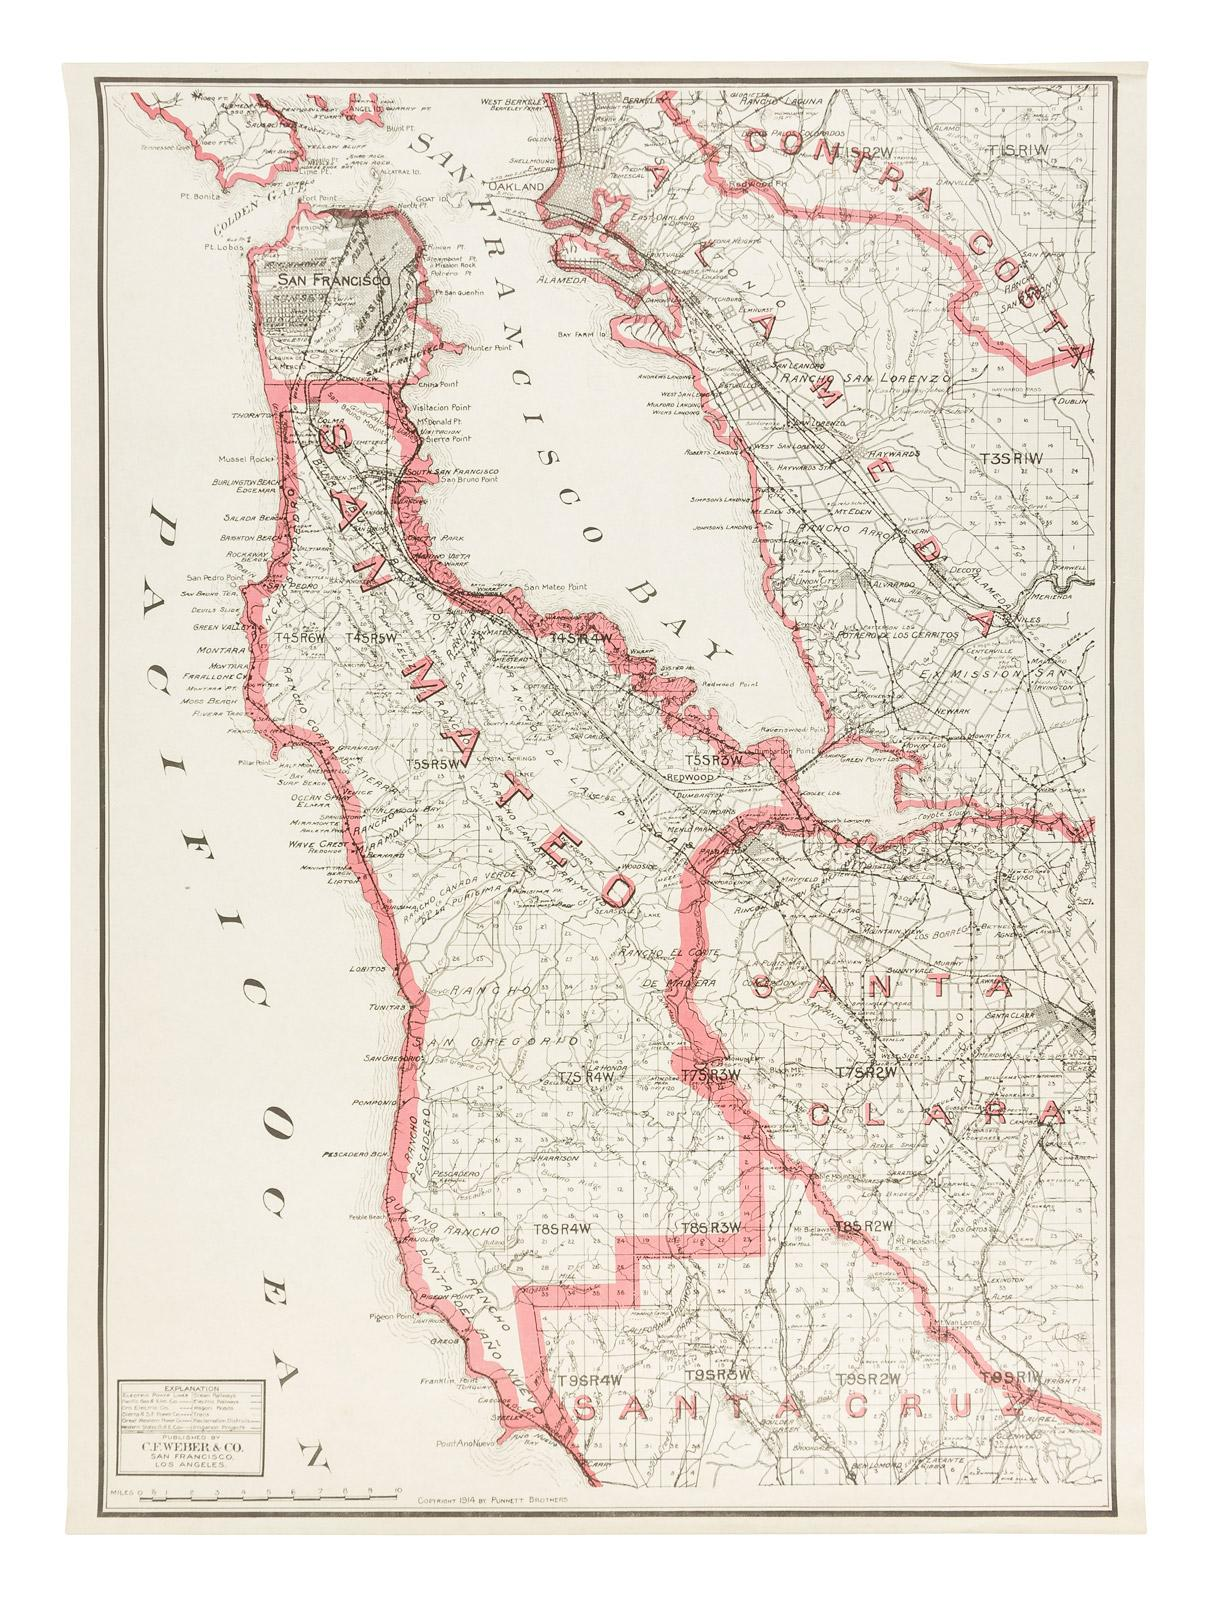 Weber's map of San Mateo County, California] - Price ... on orange county, marin county map, solano county, san jose, santa barbara county, alameda county map, foster city county map, santa clara county, los angeles county, fort bragg county map, beverly hills county map, alameda county, san francisco, santa cruz county, paso county map, california map, contra costa county, east los angeles county map, visalia county map, county connection map, san diego county, thousand oaks county map, sweet grass county map, chula vista county map, san francisco bay area, ventura county, marin county, sonoma county, santa barbara county map, redwood city, santa clara county map, monterey county map, menlo park, monterey county, daly city, burbank county map, ventura county map, van nuys county map, sausalito county map,